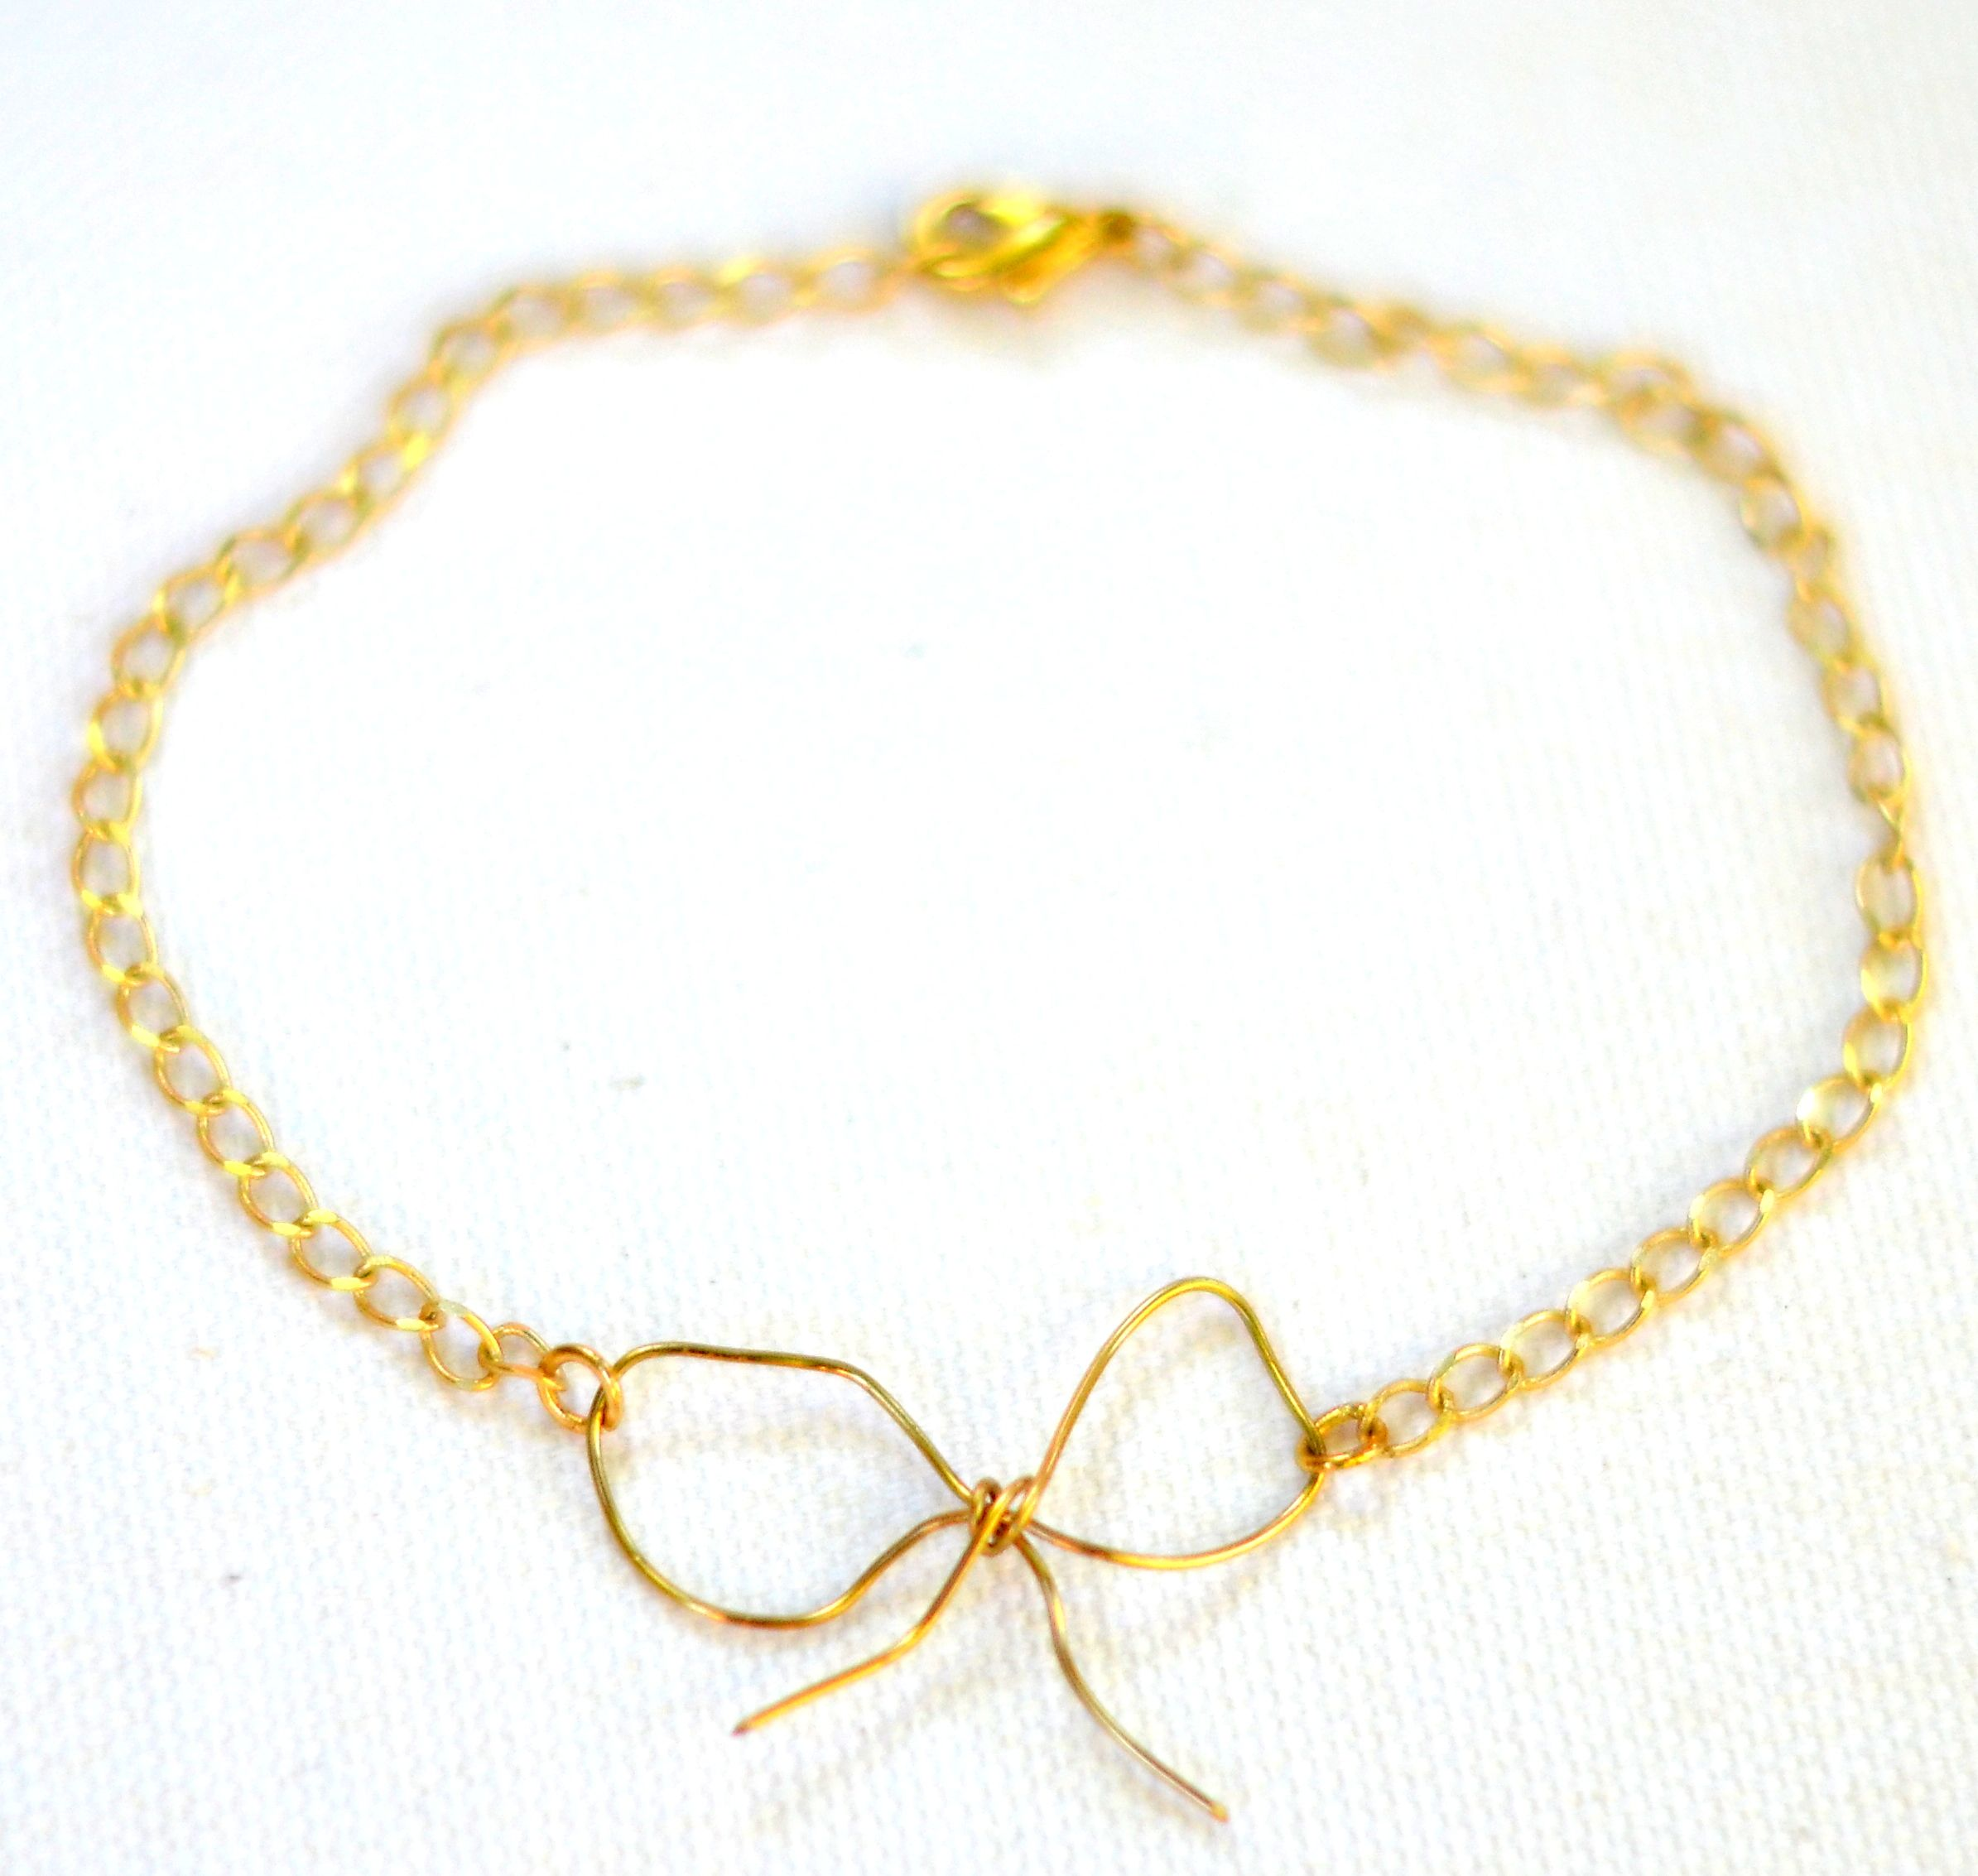 pinterest project pin bow from the shine online shopping bracelet